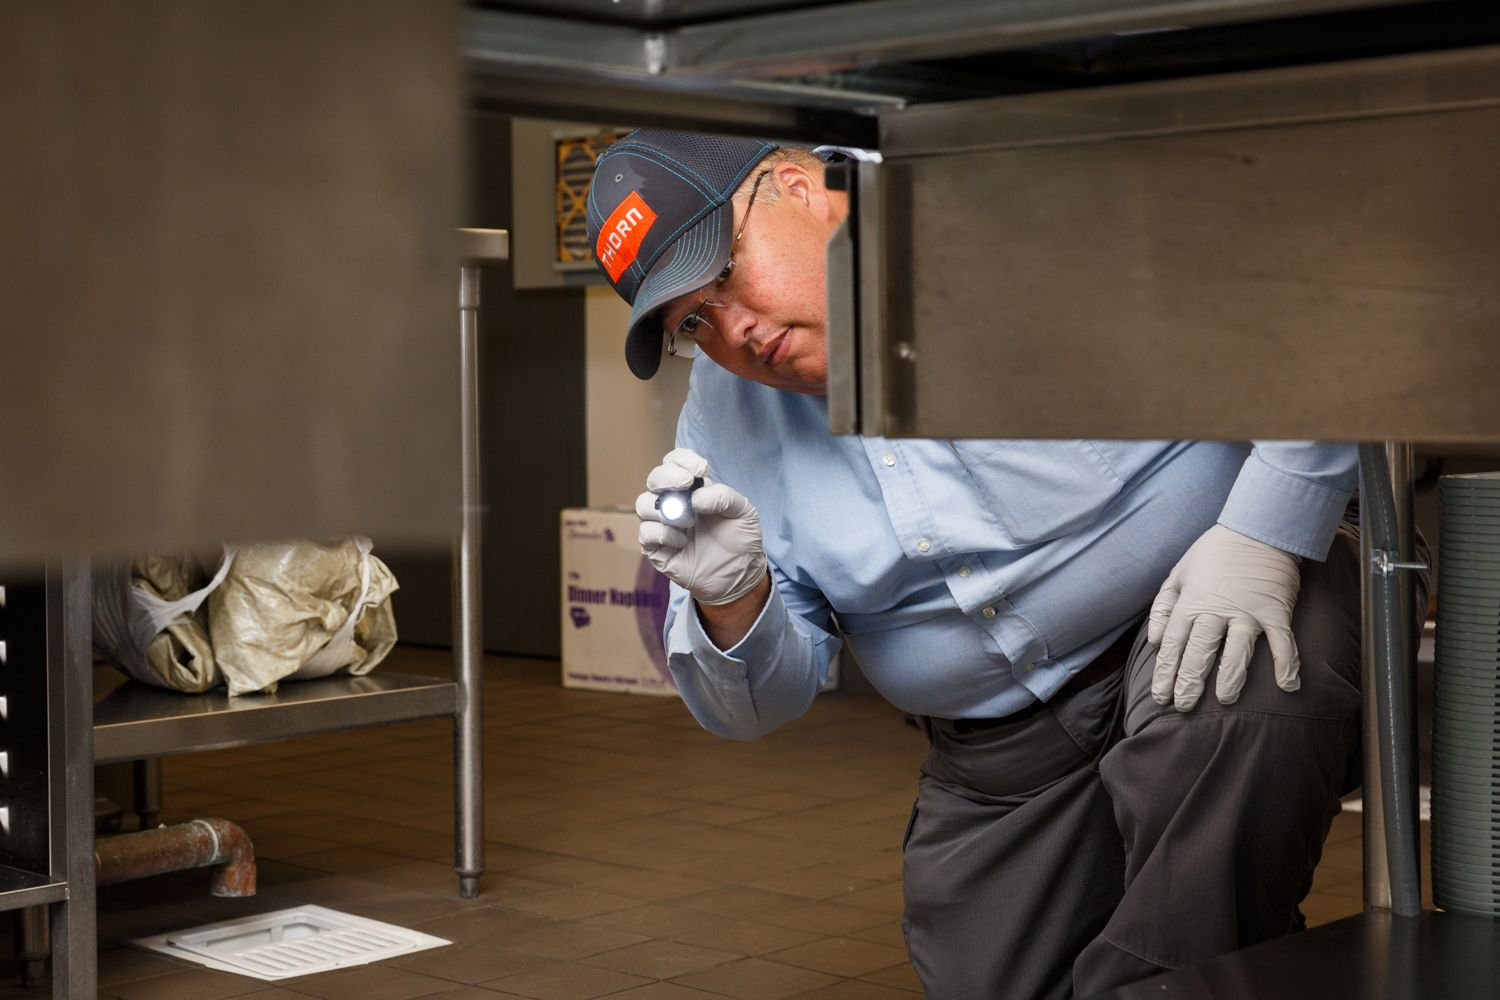 Thorn professional inspecting for pests under a counter